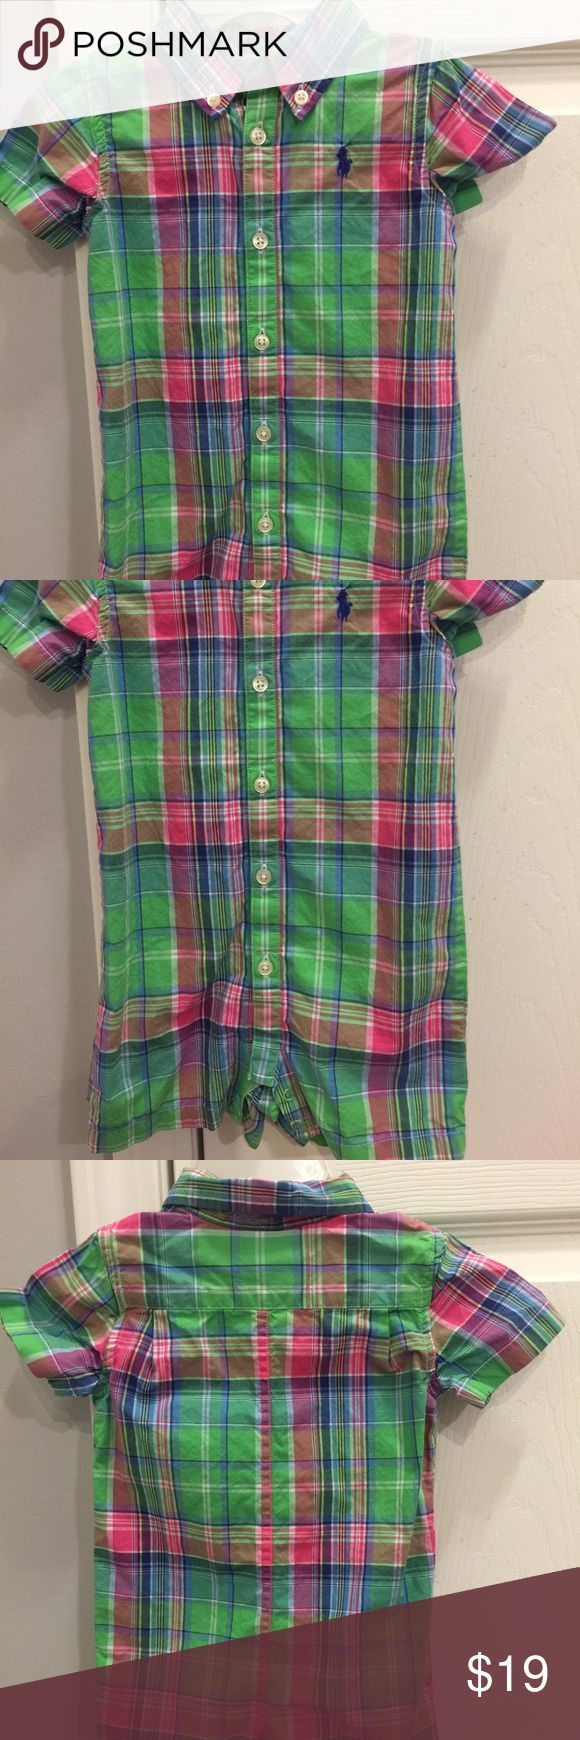 EUC!! Ralph Lauren baby boys plaid one-piece EUC!!!! How stinking cute is this?!?!  Perfect for spring and summer! Ralph Lauren baby boy's plaid button-up, collared, one-piece outfit! Ralph Lauren One Pieces